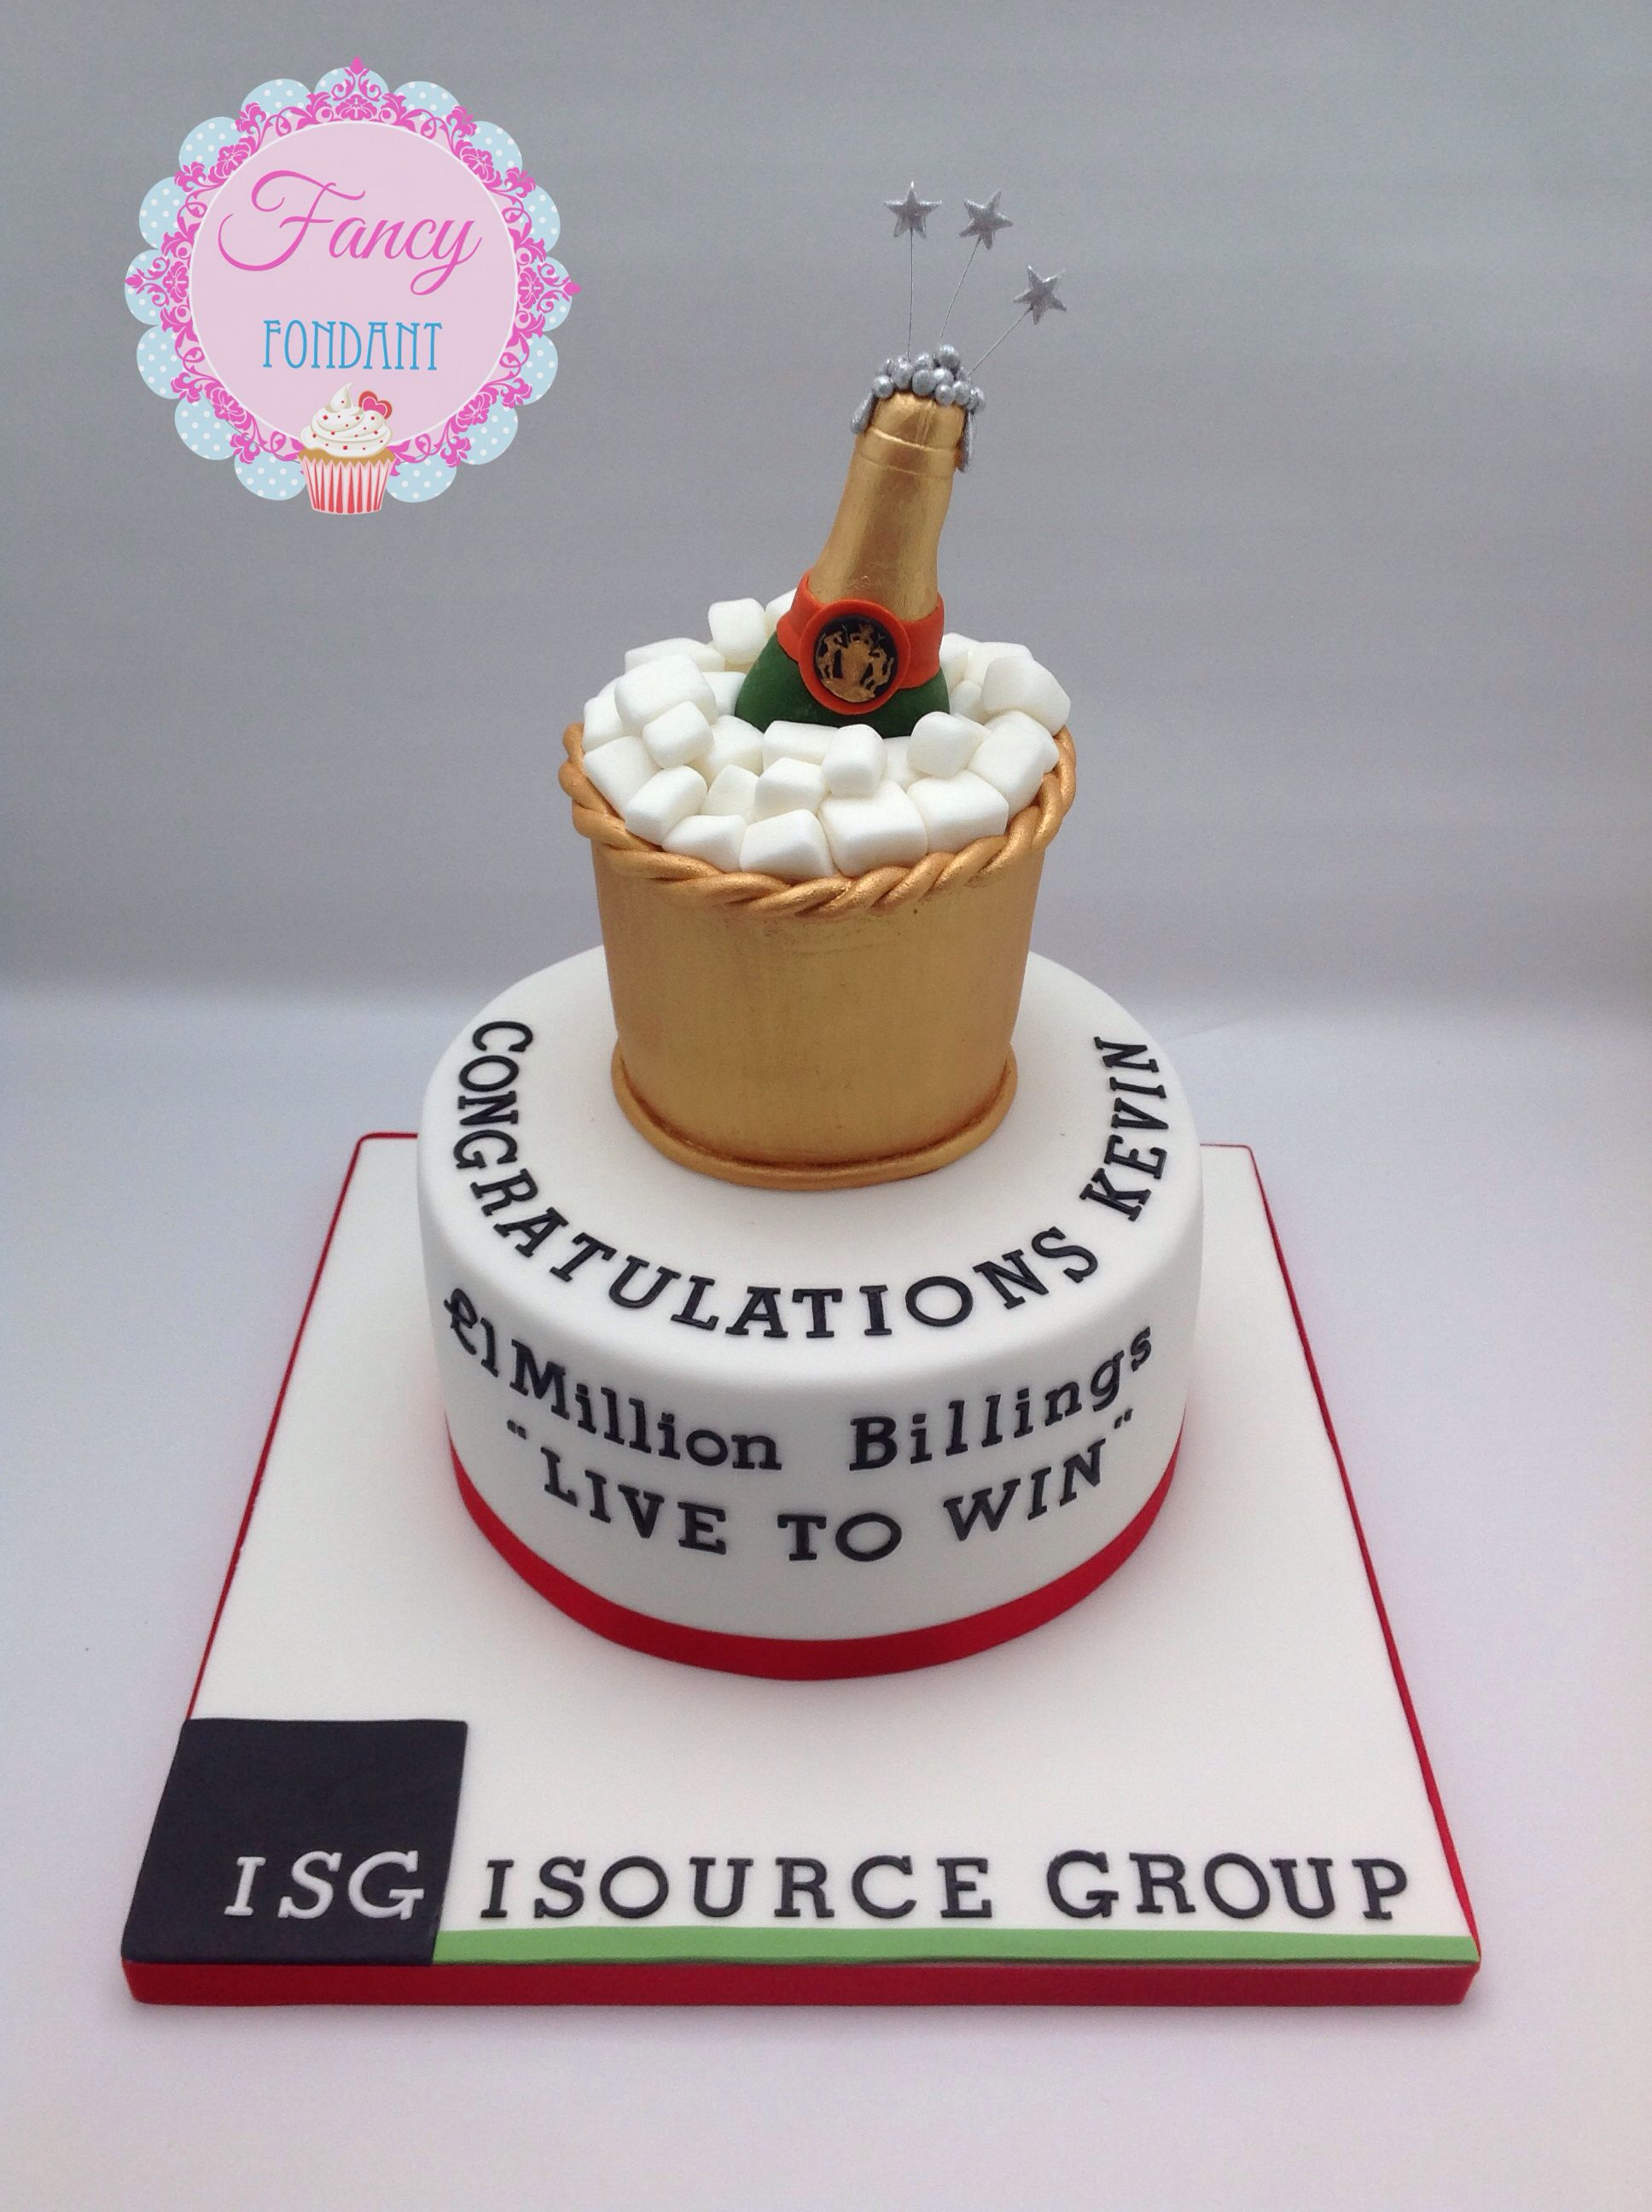 A Celebration Cake With Champagne Bottle Made By Emily At